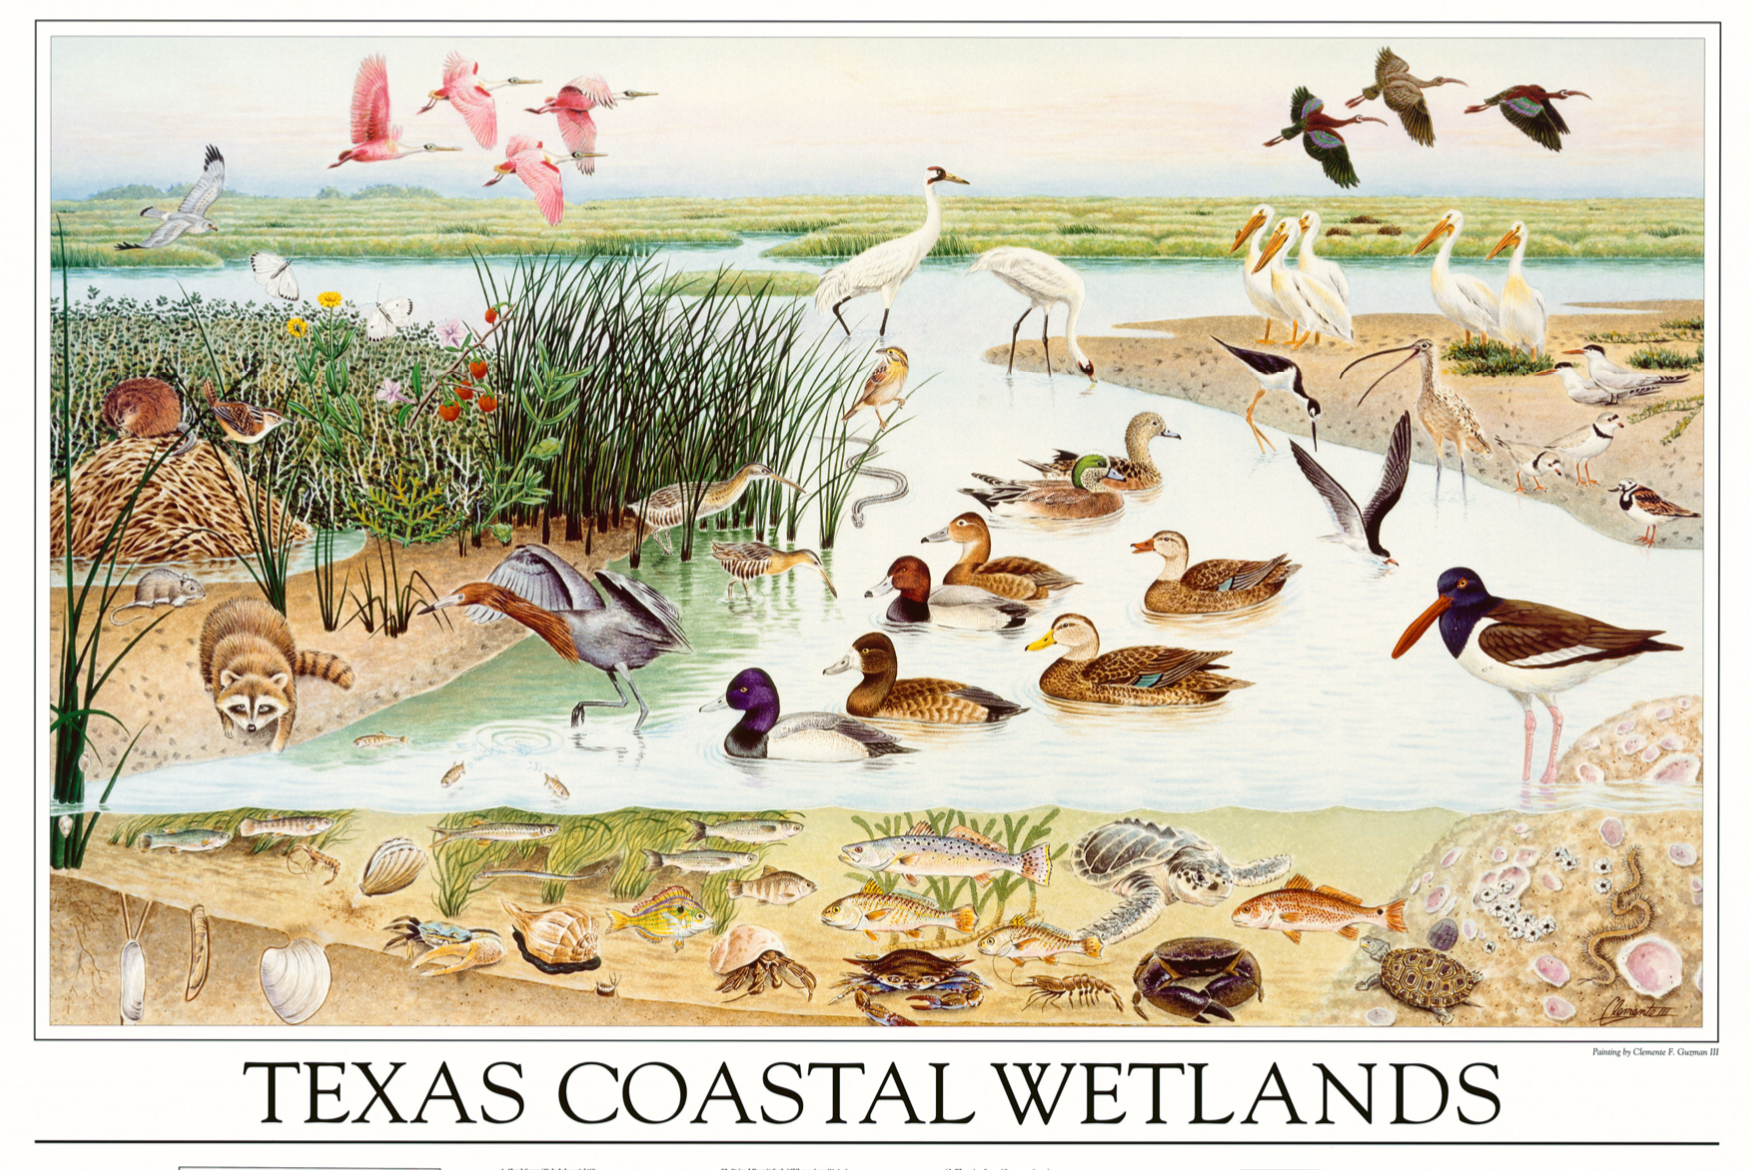 Illustration of species in the Texas Coastal Wetlands